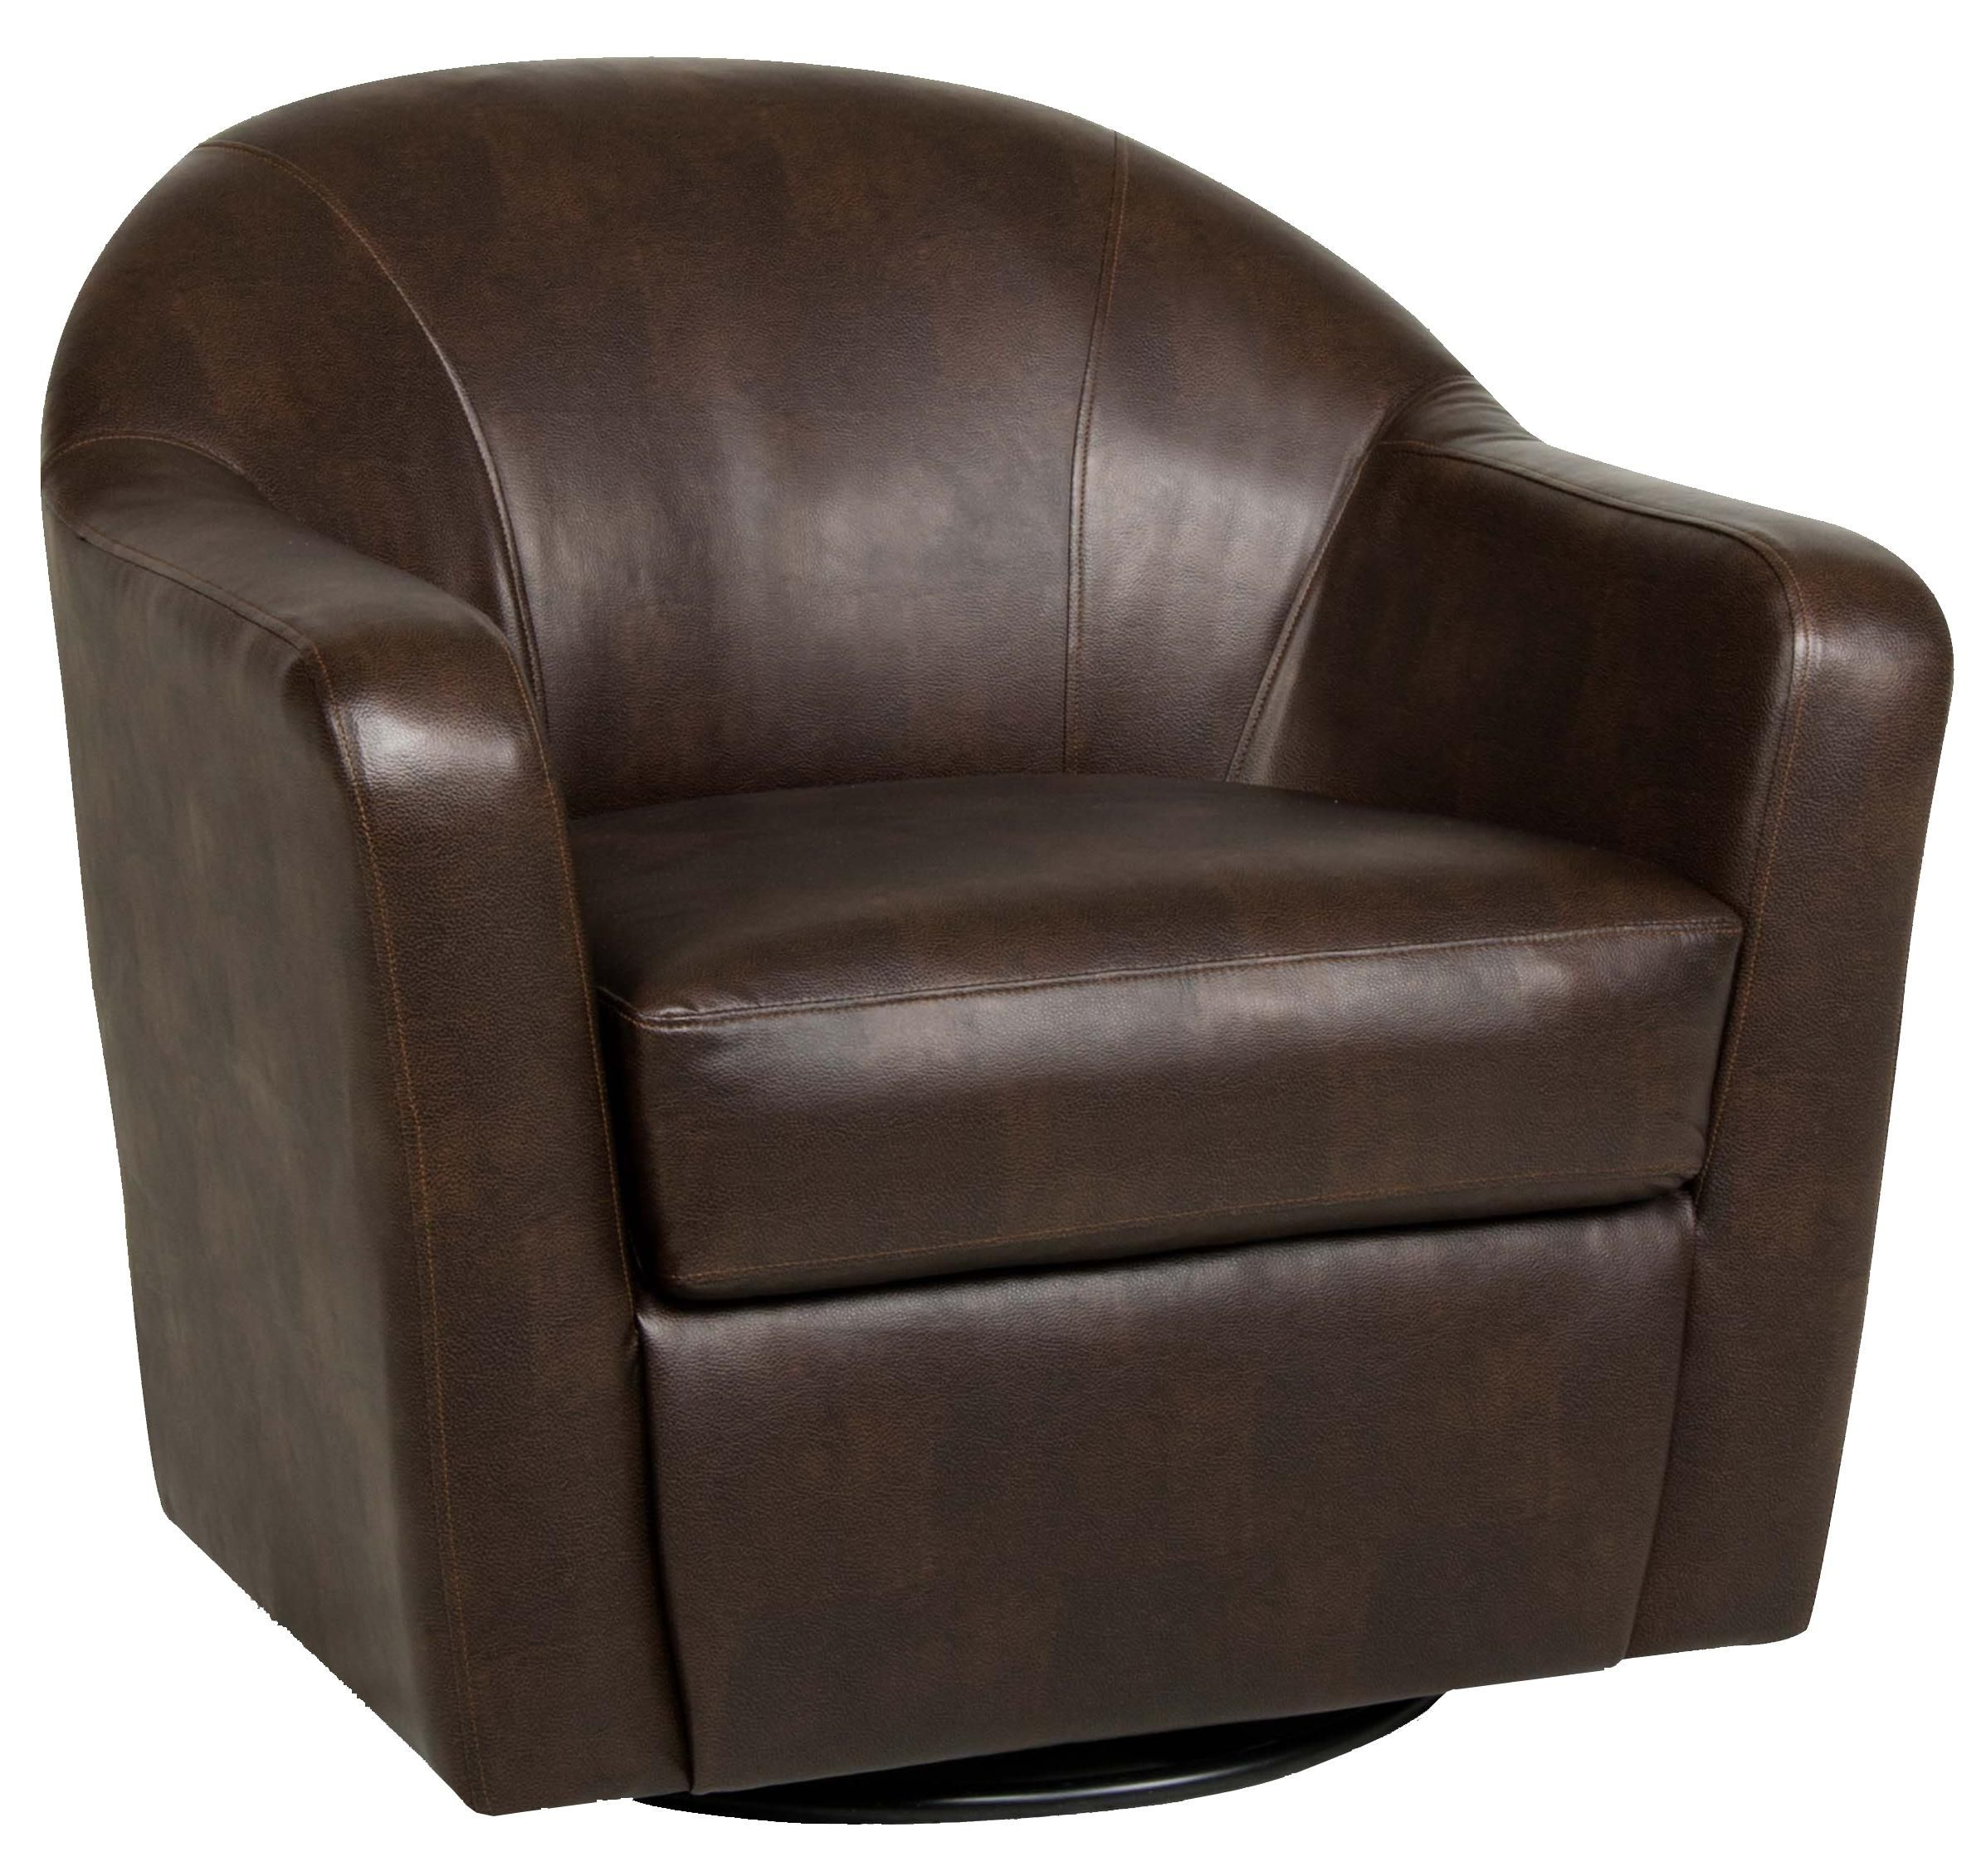 Leather Swivel Chairs For Living Room | http://intrinsiclifedesign ...